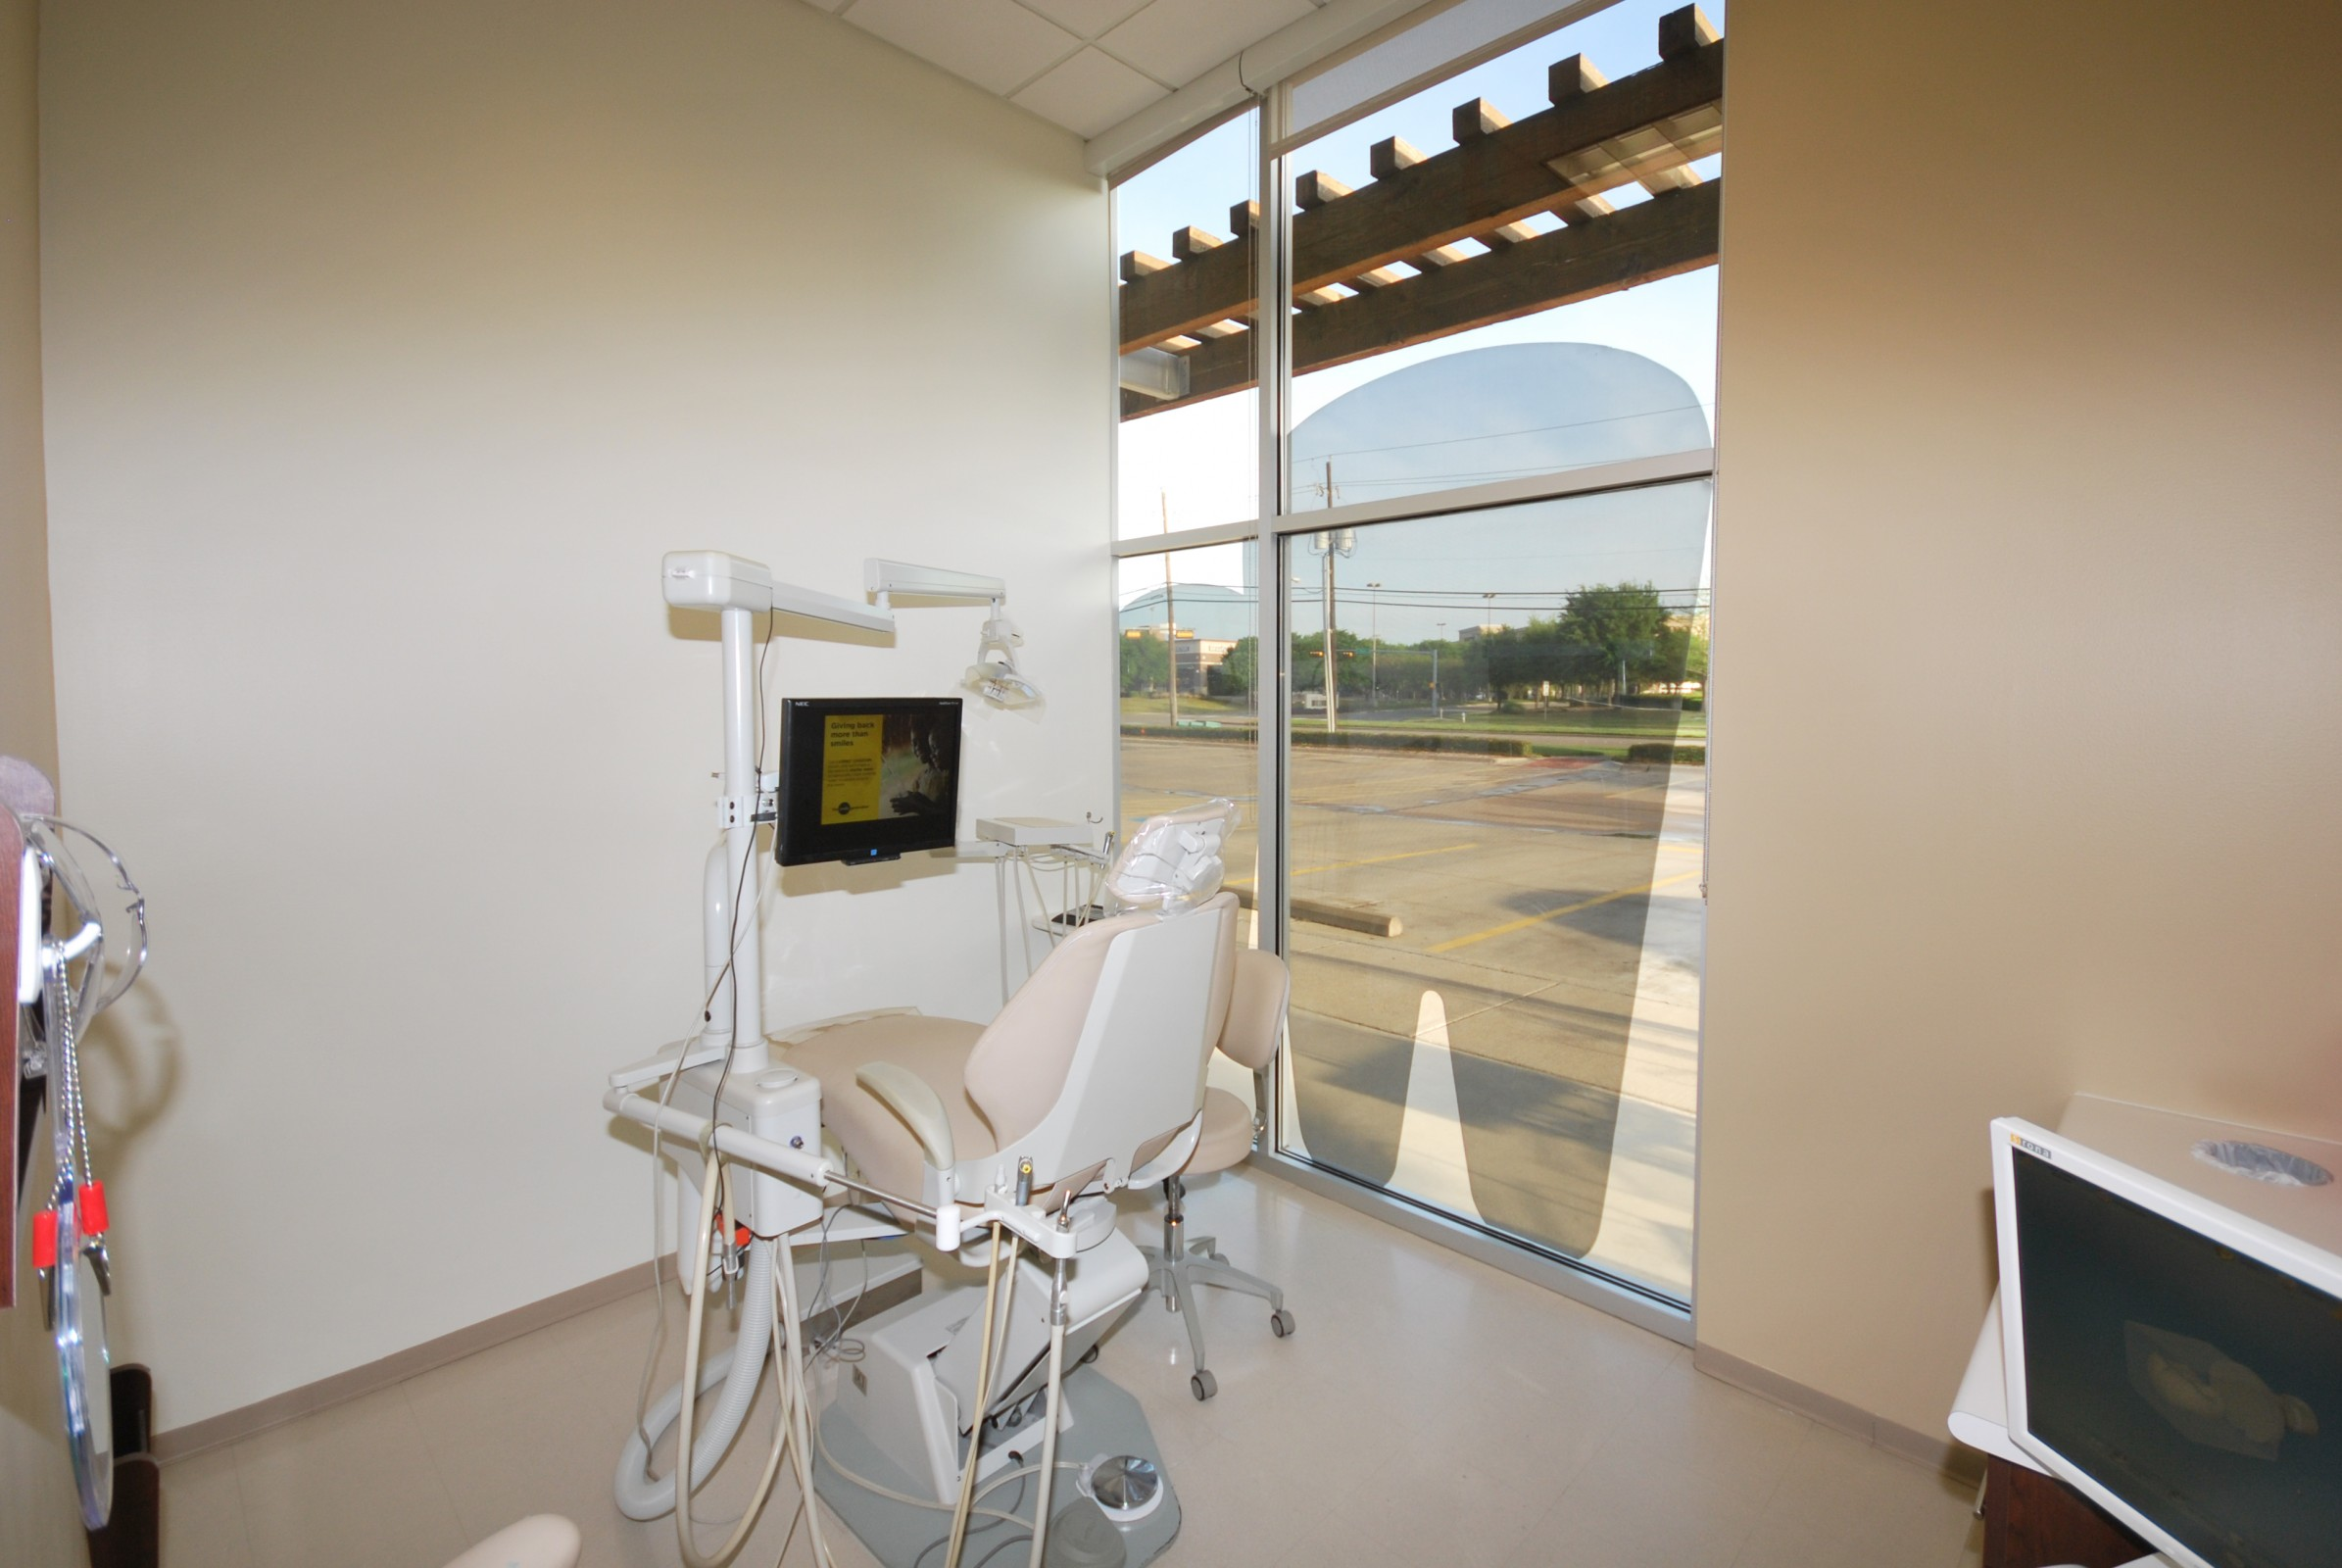 West Plano Modern Dentistry and Orthodontics image 3